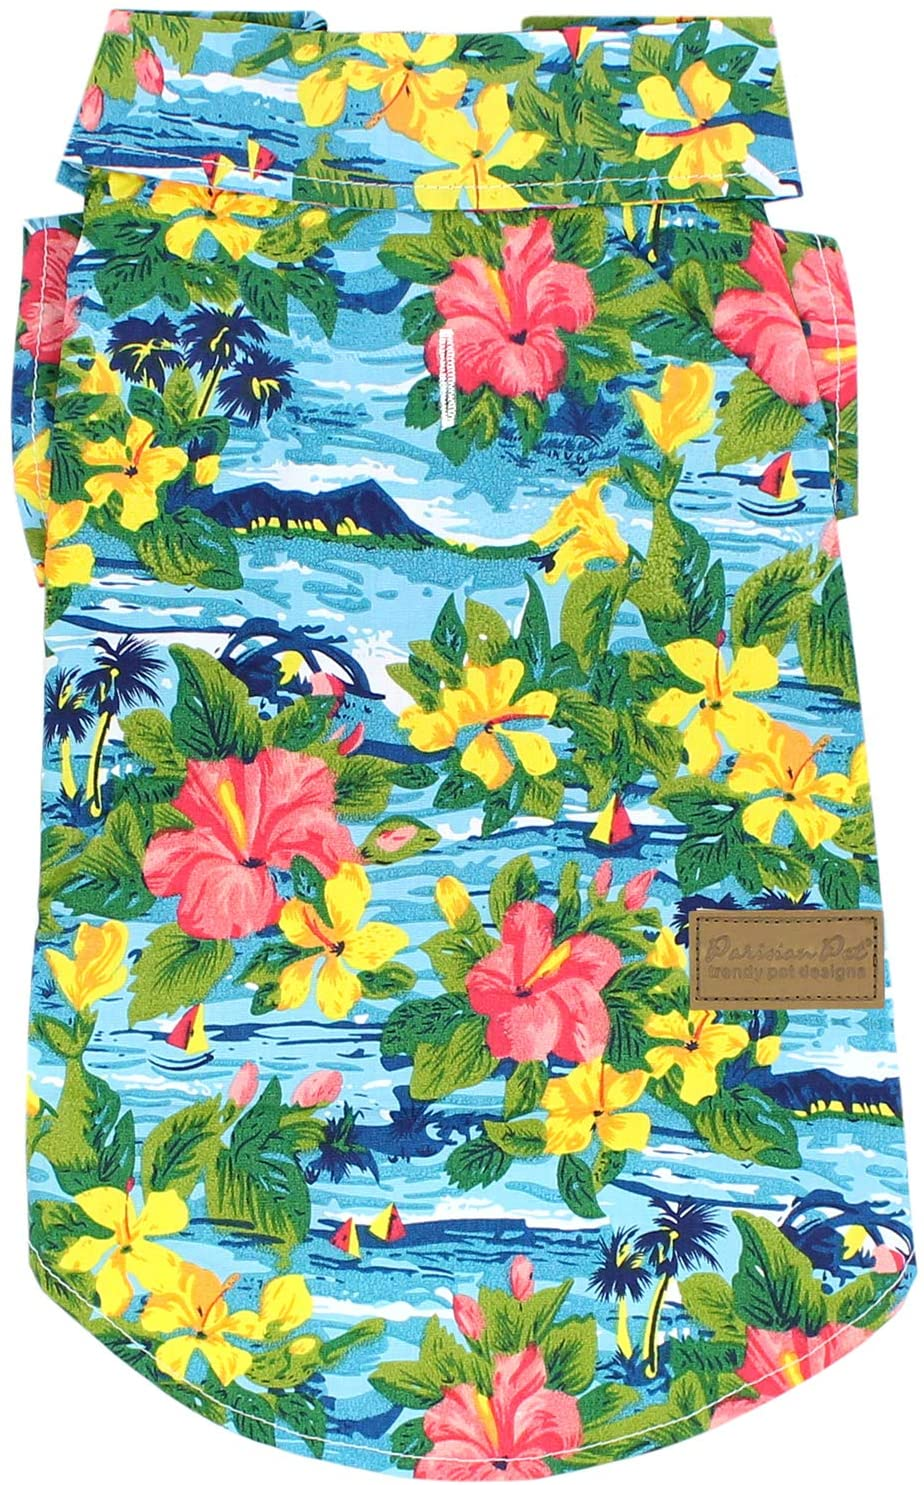 Parisian Pet Hawaiian Dog Clothes - Hibiscus Print Dress/Tropical Shirt - Dog Luau Costume for Male and Female Dogs - Perfect Summer Dress for Pets